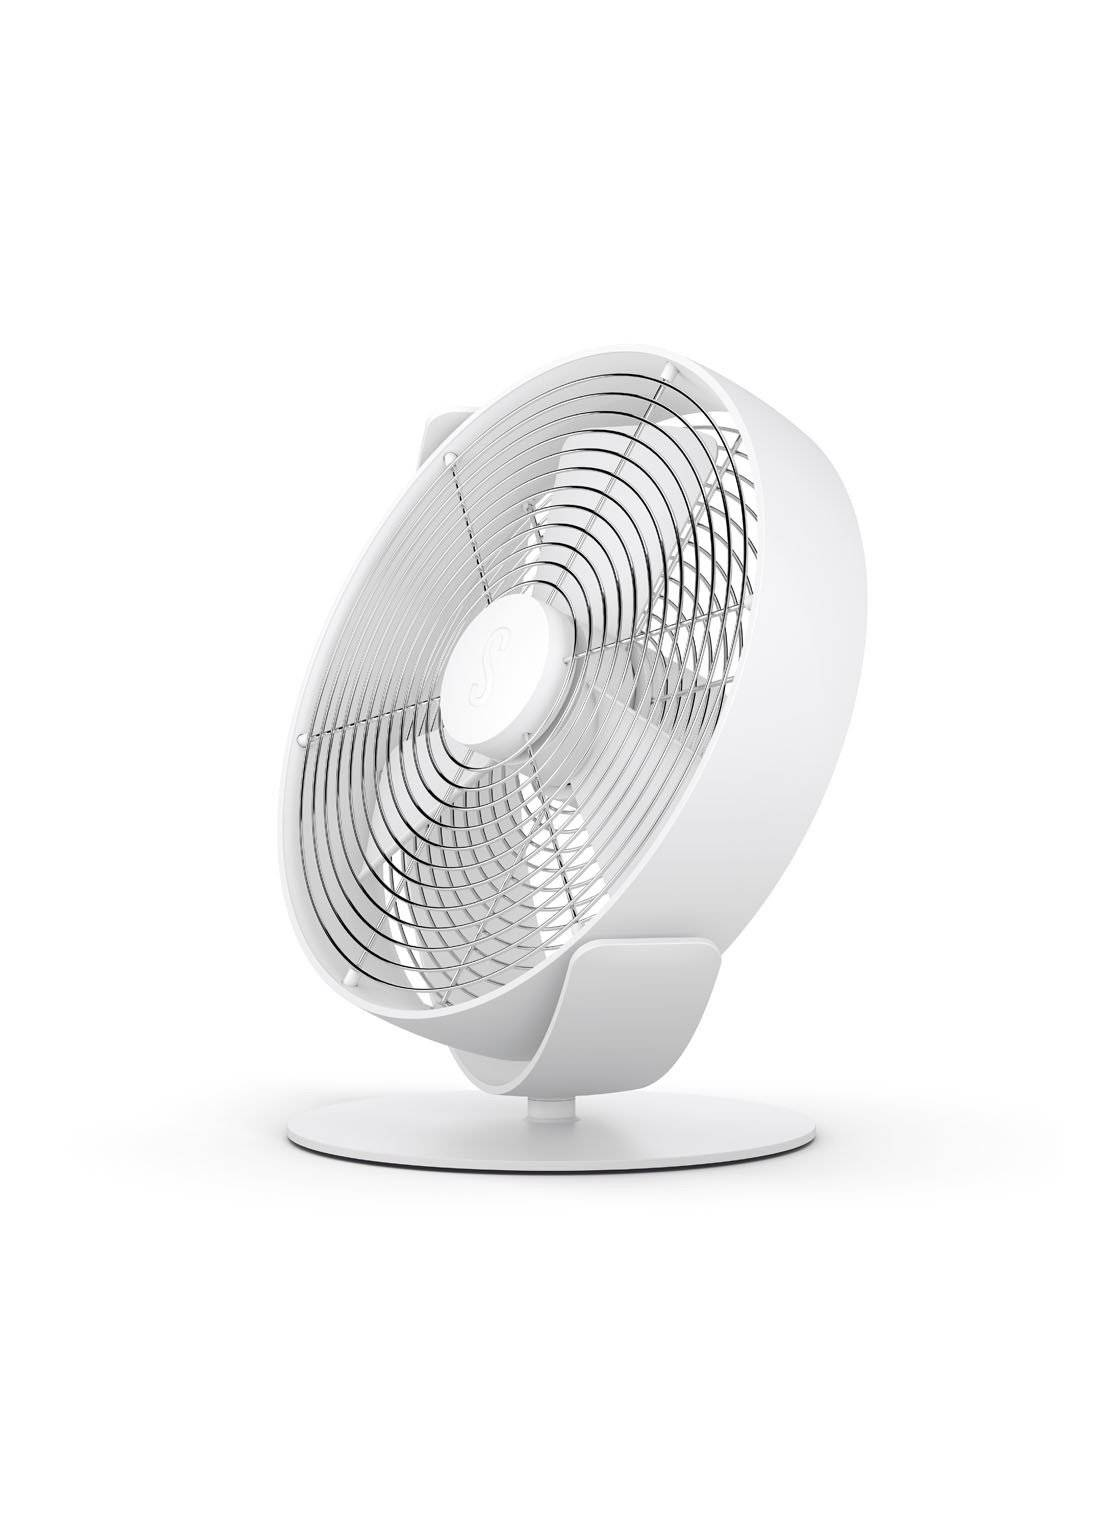 stadler form Ventilateur de table TIM, 29 cm de haut - Blanc